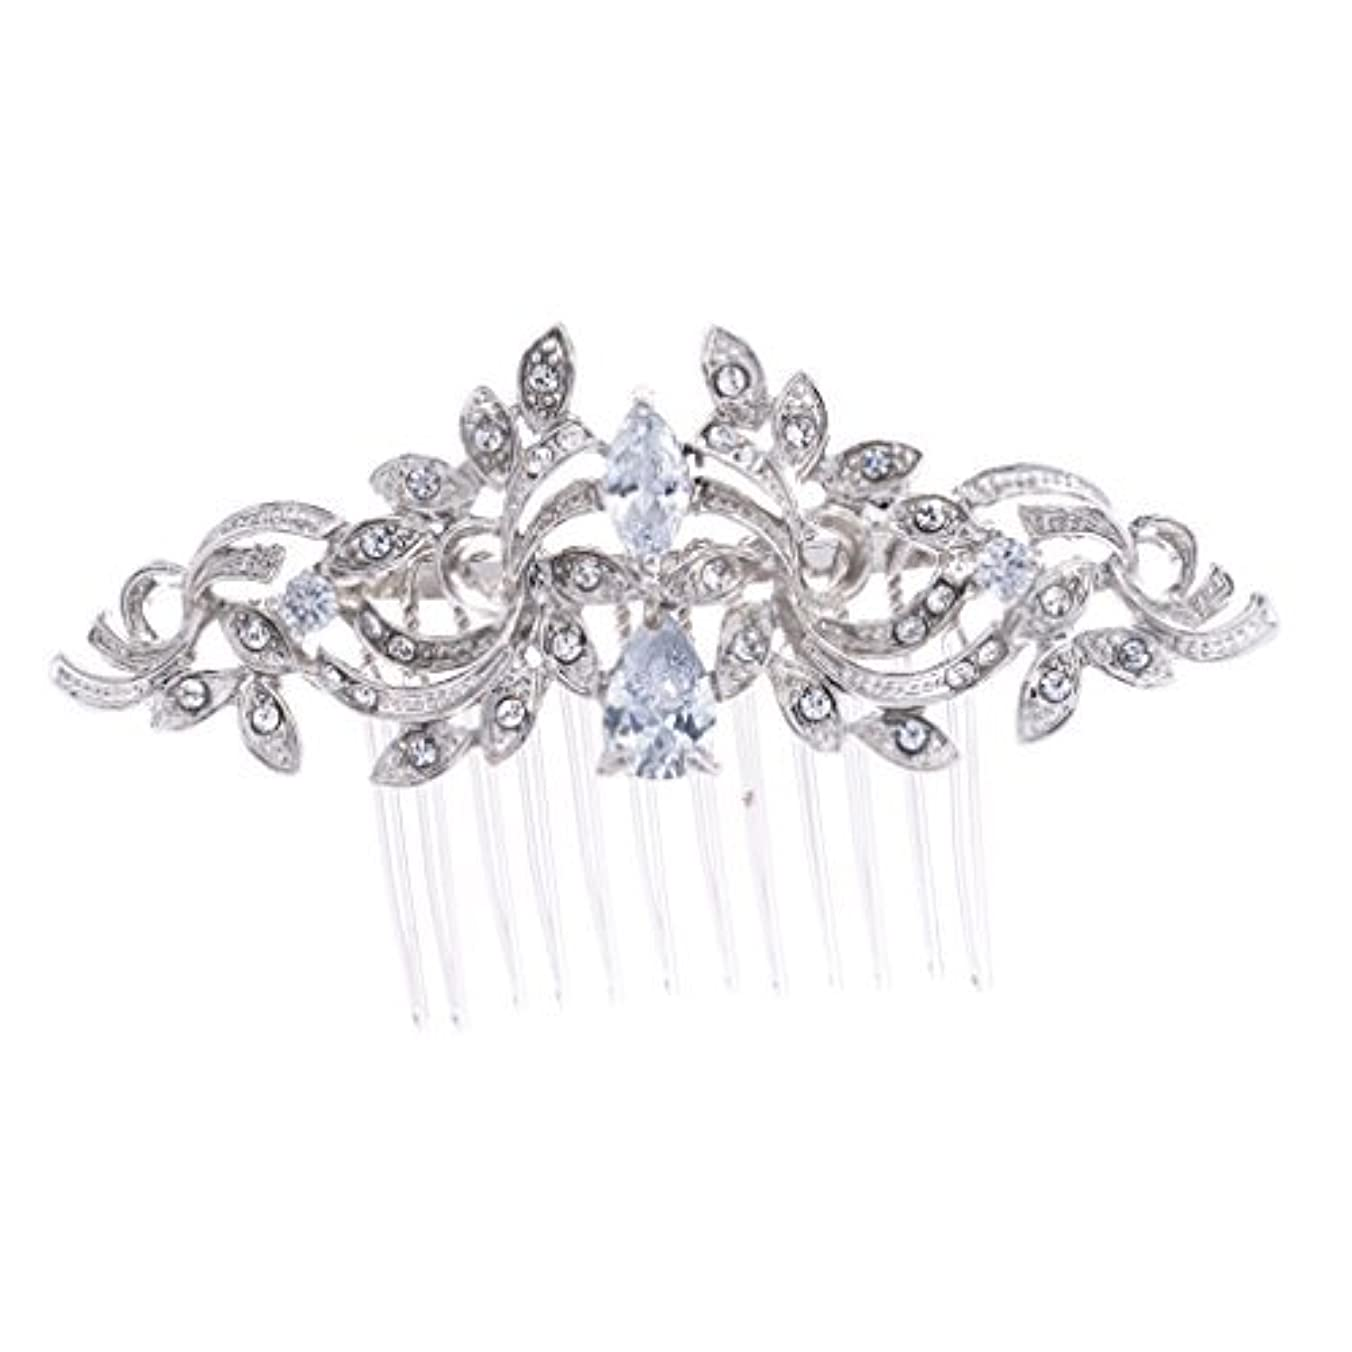 テスピアン流体酸度SEPBRIDALS Crystal Rhinestone Leaves Hair Comb Hair Pins Bridal Wedding Hair Accessories Jewelry 4012R [並行輸入品]